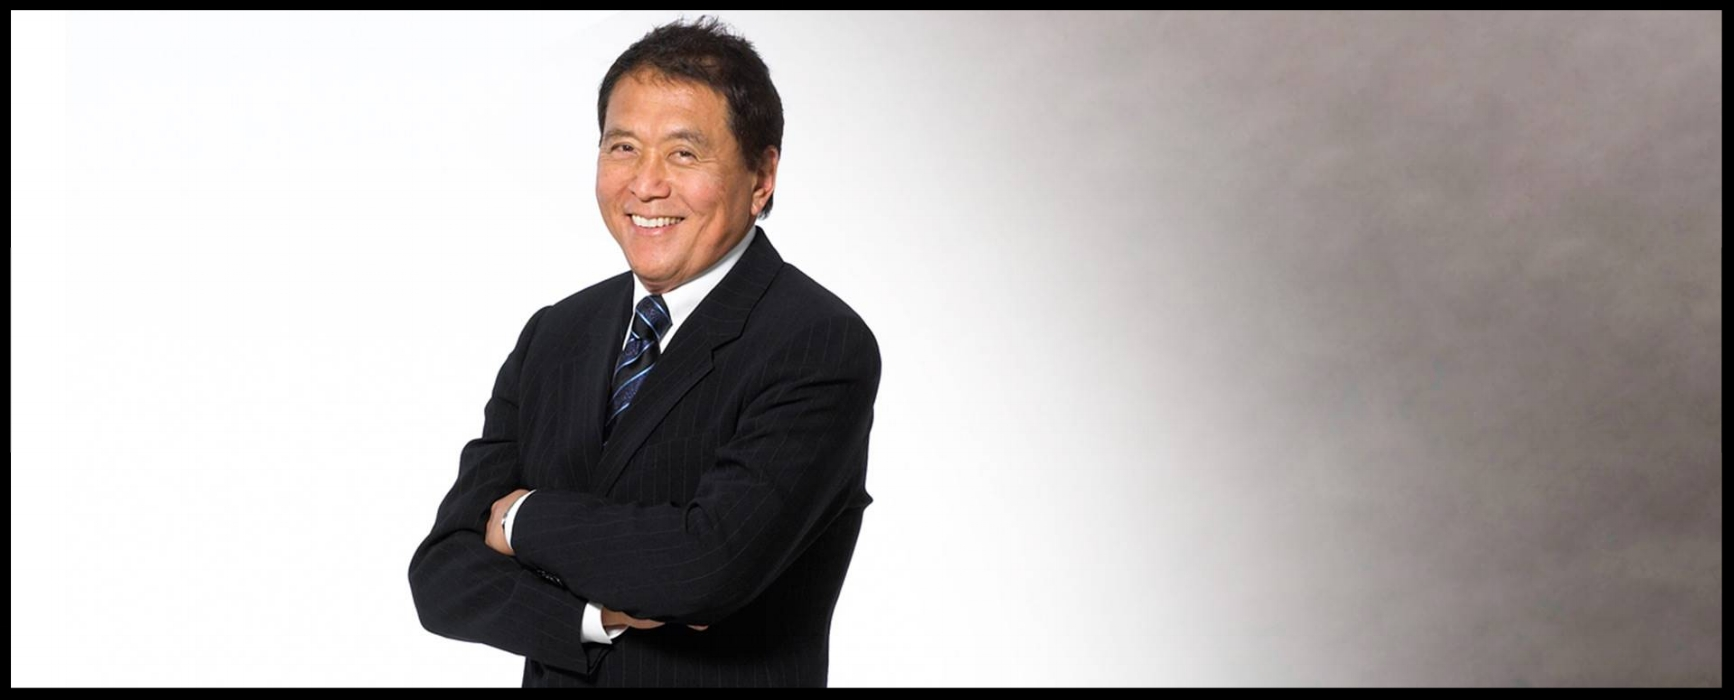 """Robert Kiyosaki, author of the bestselling book """"Rich Dad, Poor Dad."""" Kiyosaki has authored more than 15 books to date."""